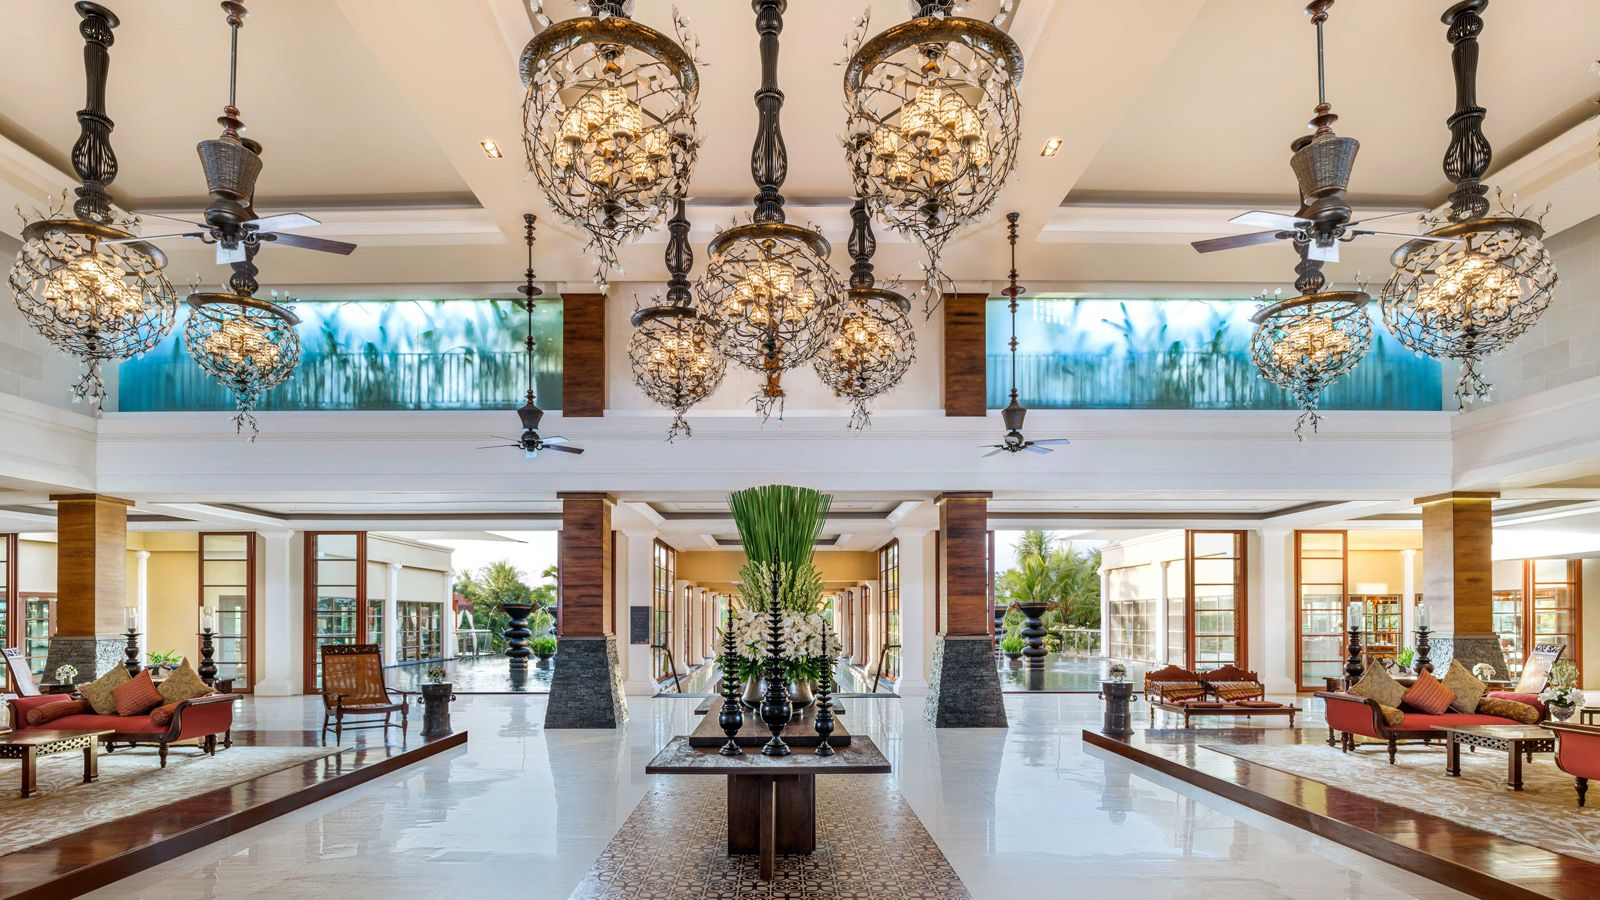 Lobby at The St. Regis Bali Resort